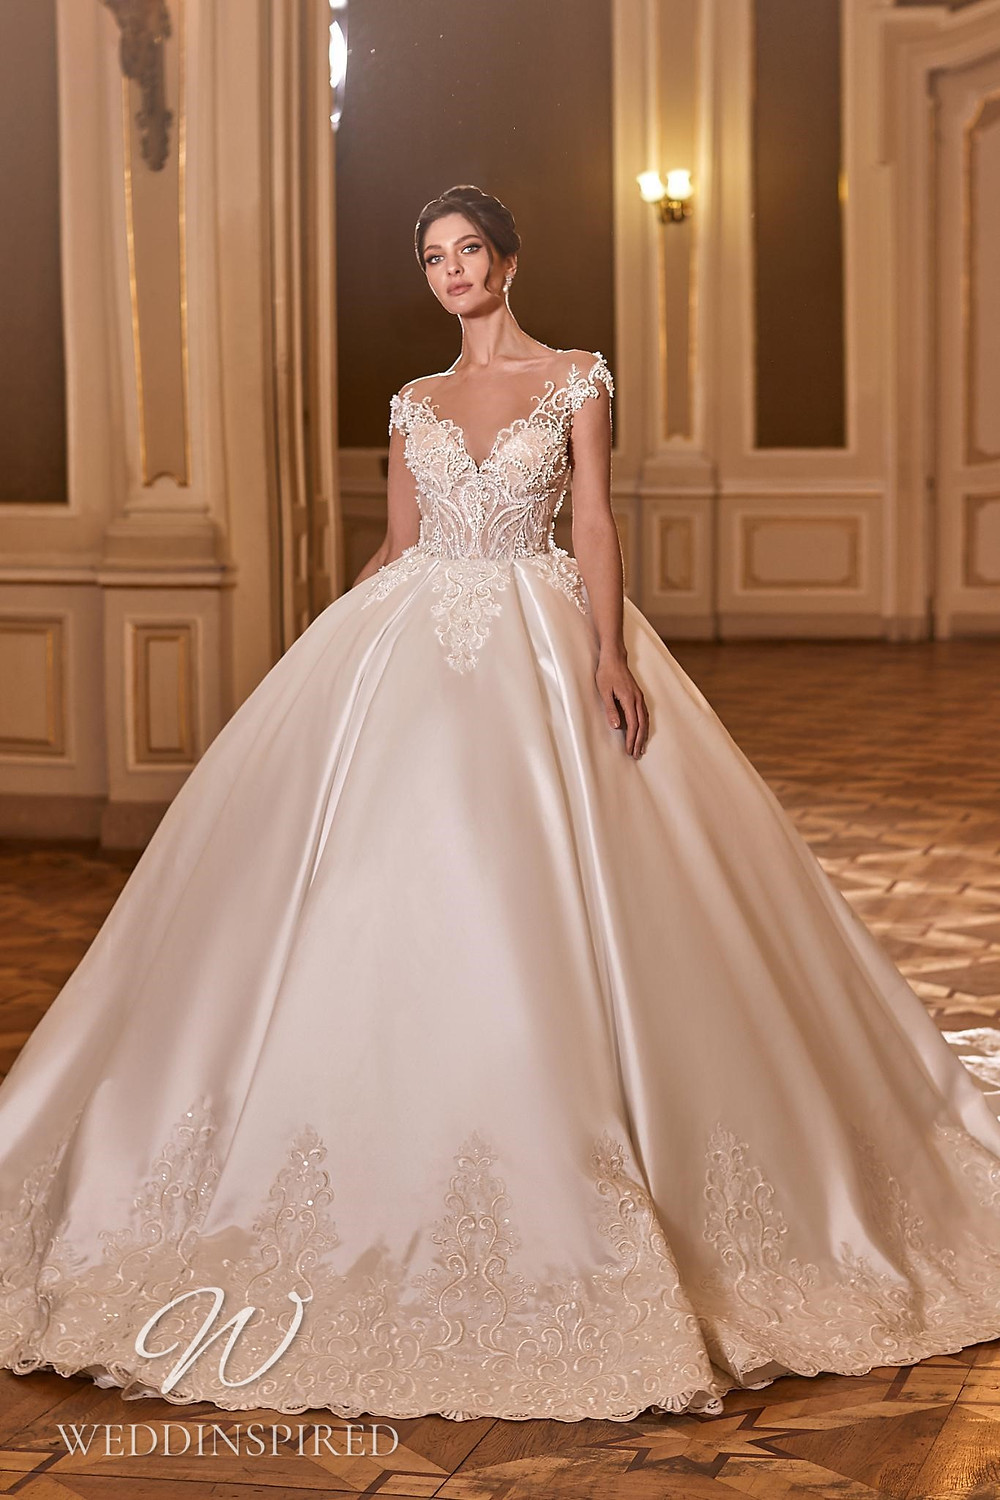 A Ricca Sposa 2022 off the shoulder satin and lace princess wedding dress